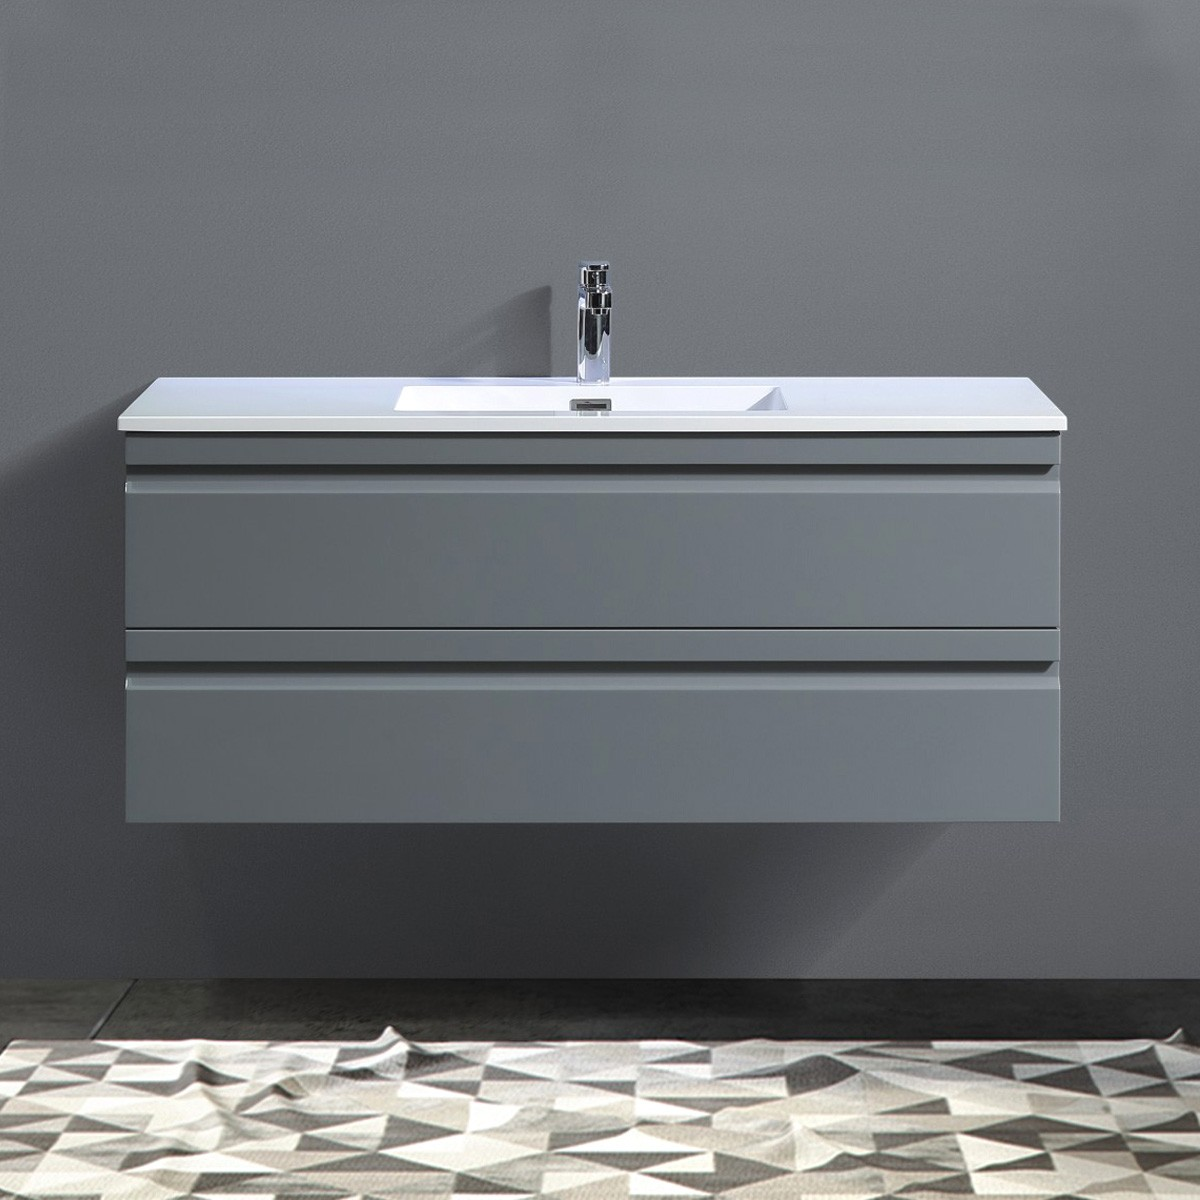 48 In. Wall Mount Vanity with Basin (ZRW1200GR-V)